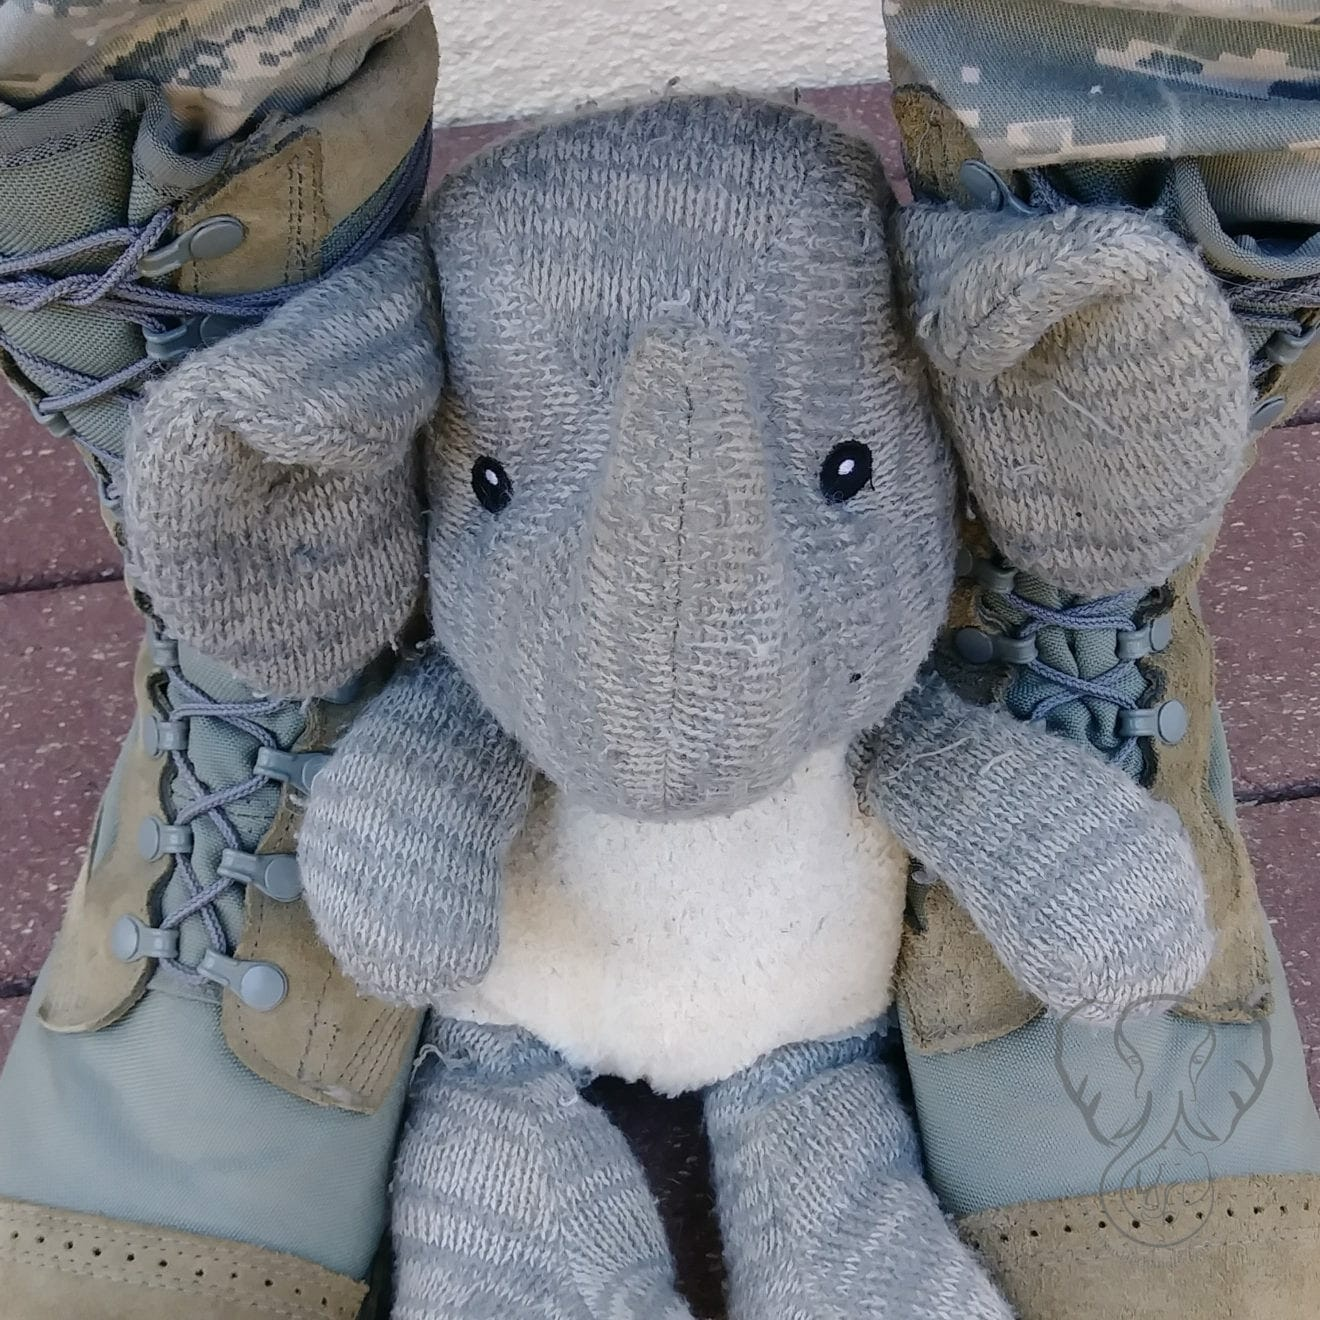 A light gray stuffed elephant nestled between sage-green military boots